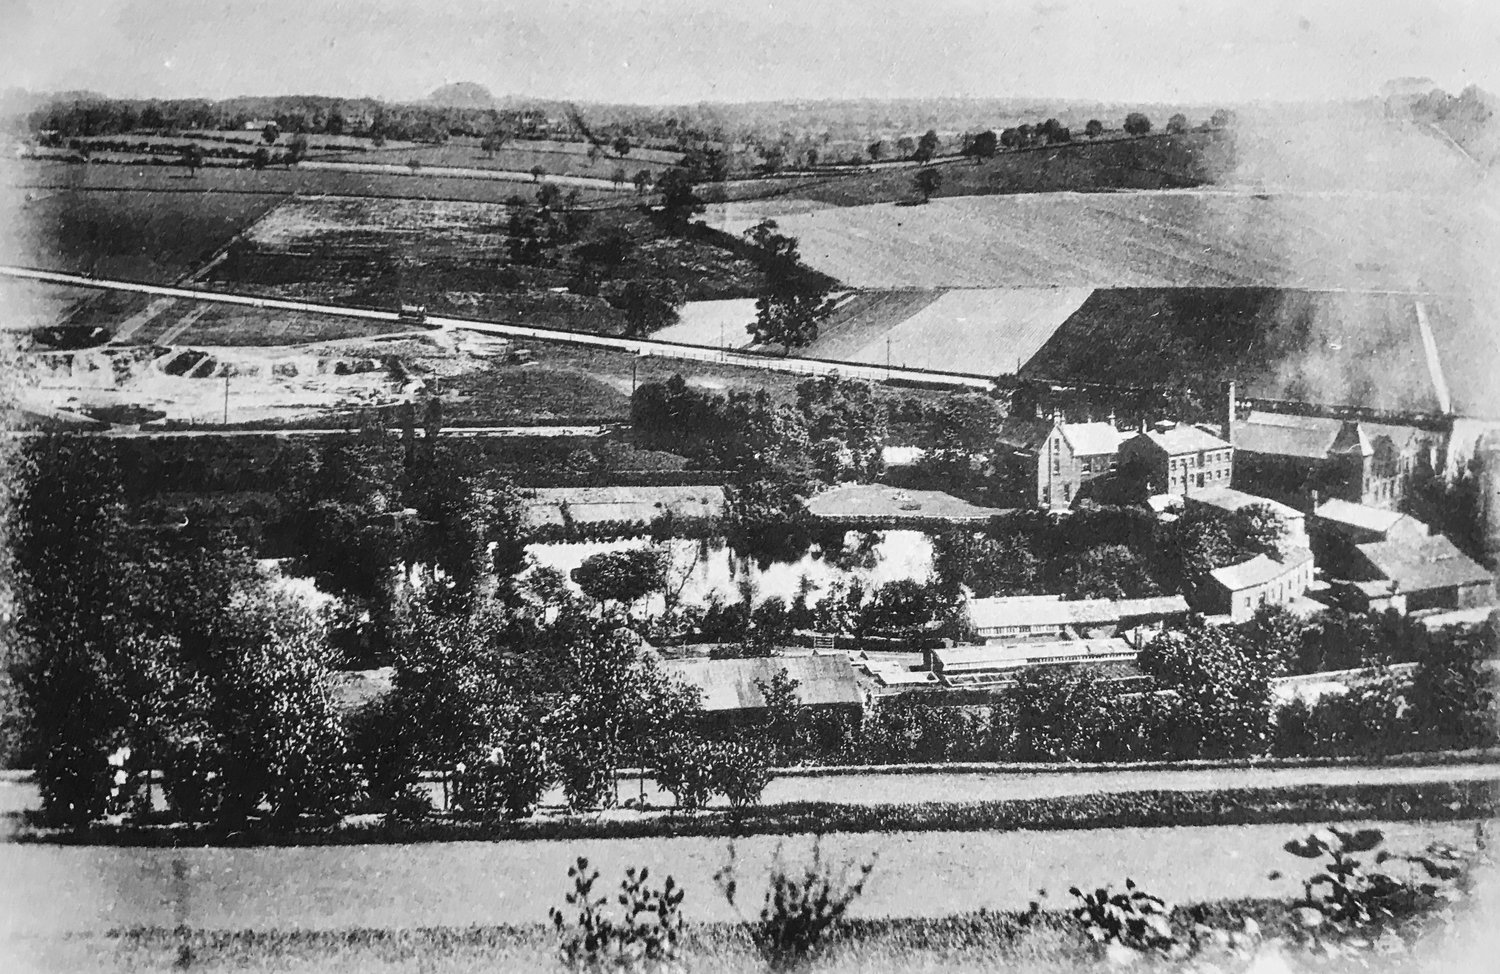 33  Grove Mill and Pond (demolished), c1890